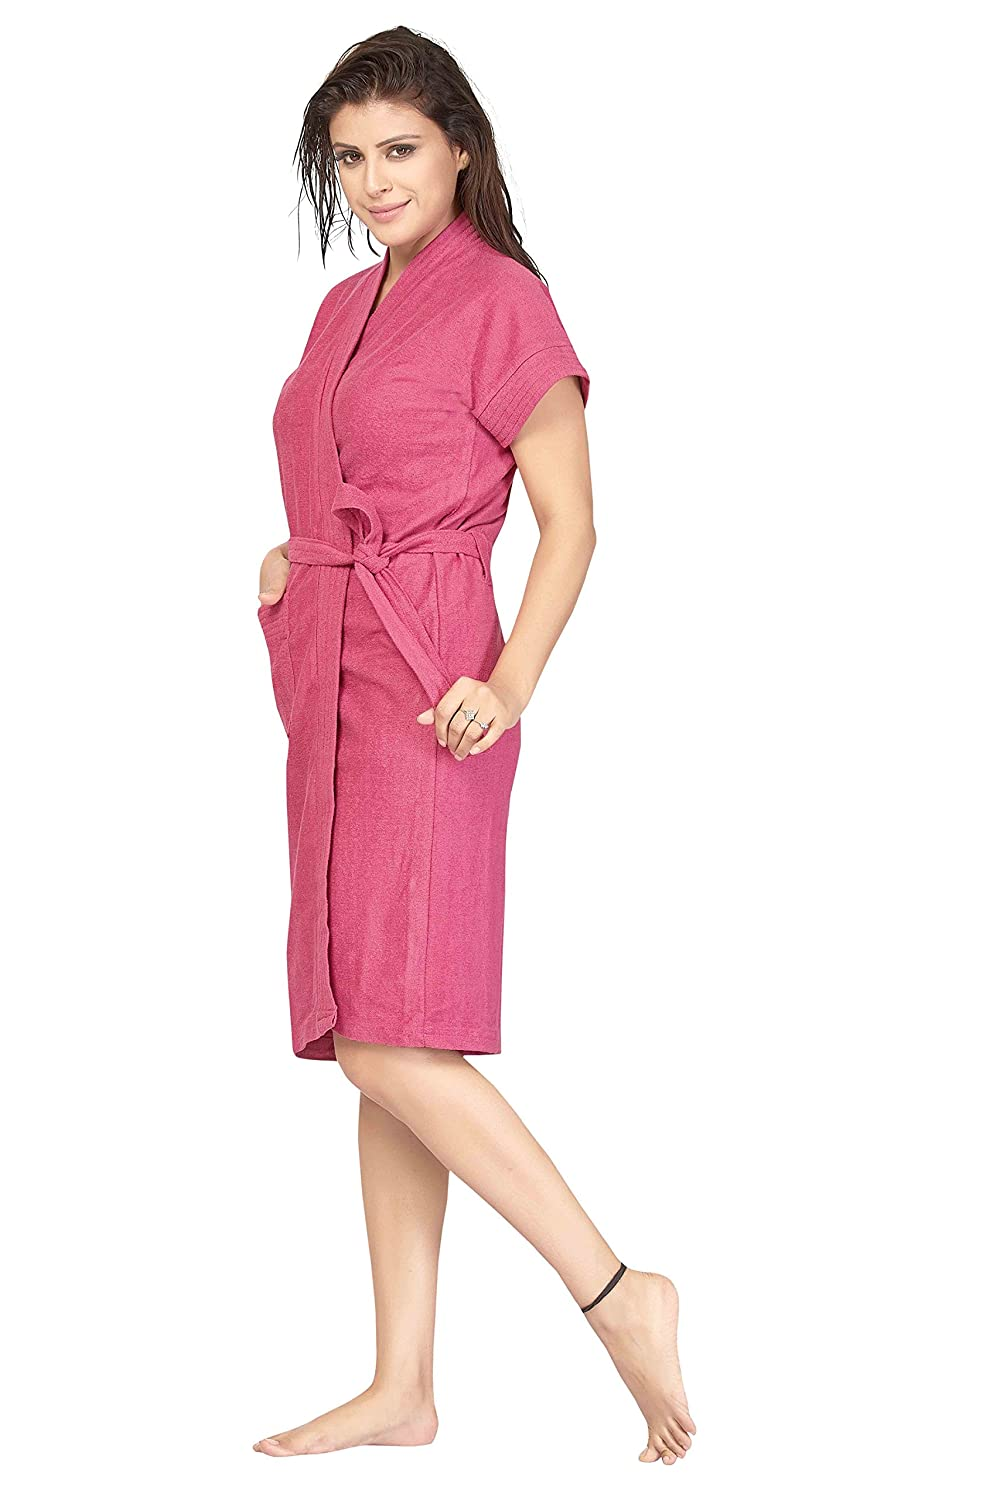 9ec6d11f60 Be You Fashion Women Terry Cotton Rose Pink Color Solid Bath Robe   Amazon.in  Clothing   Accessories